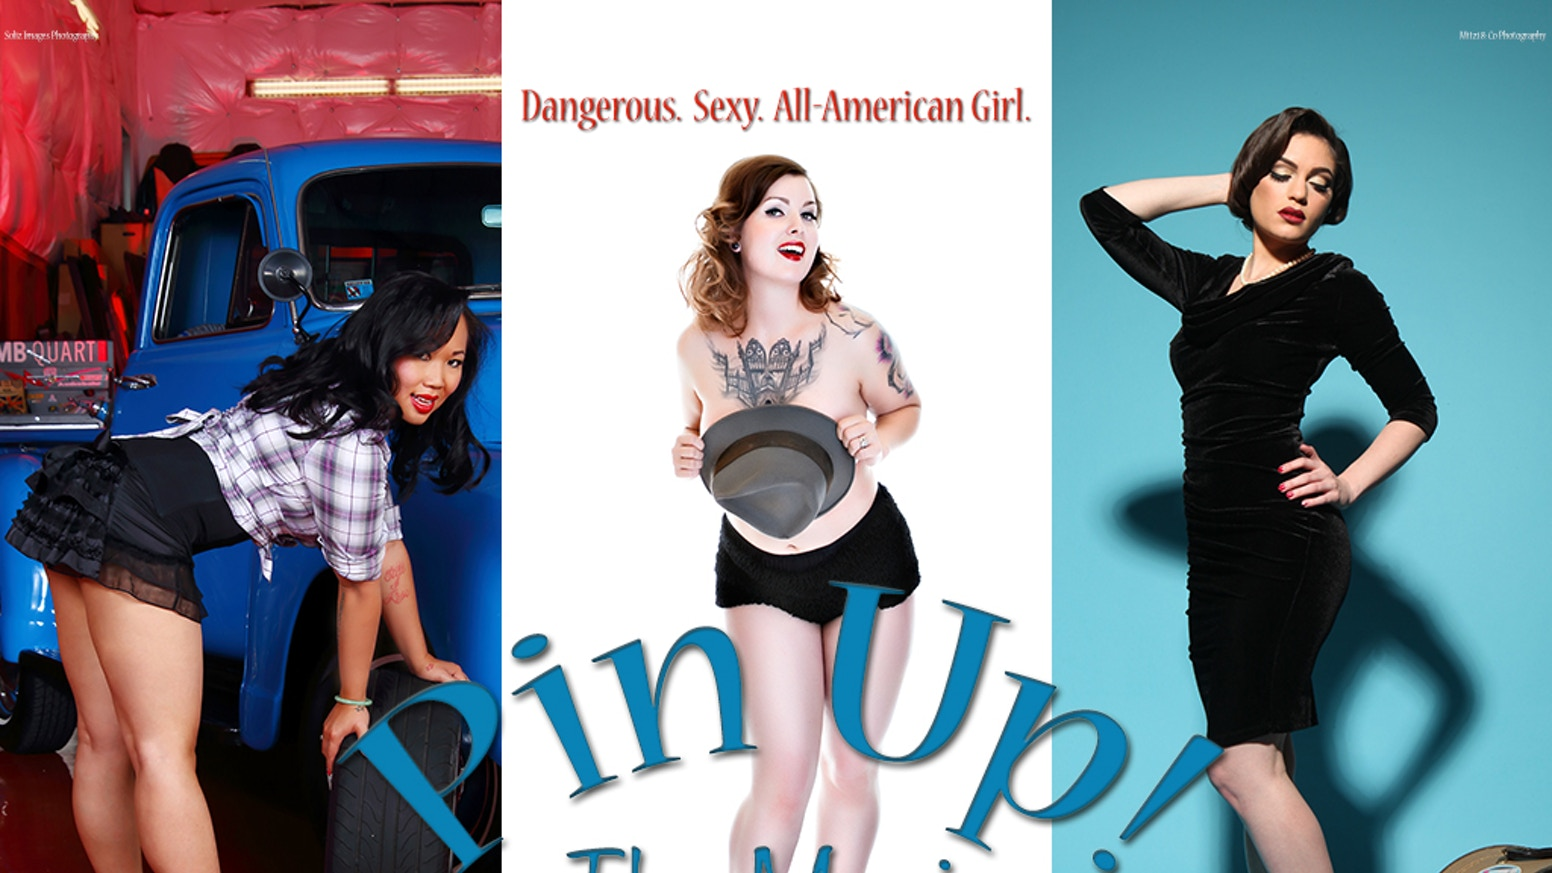 All American Girl Movie pin up! the movie the documentary with vintage style